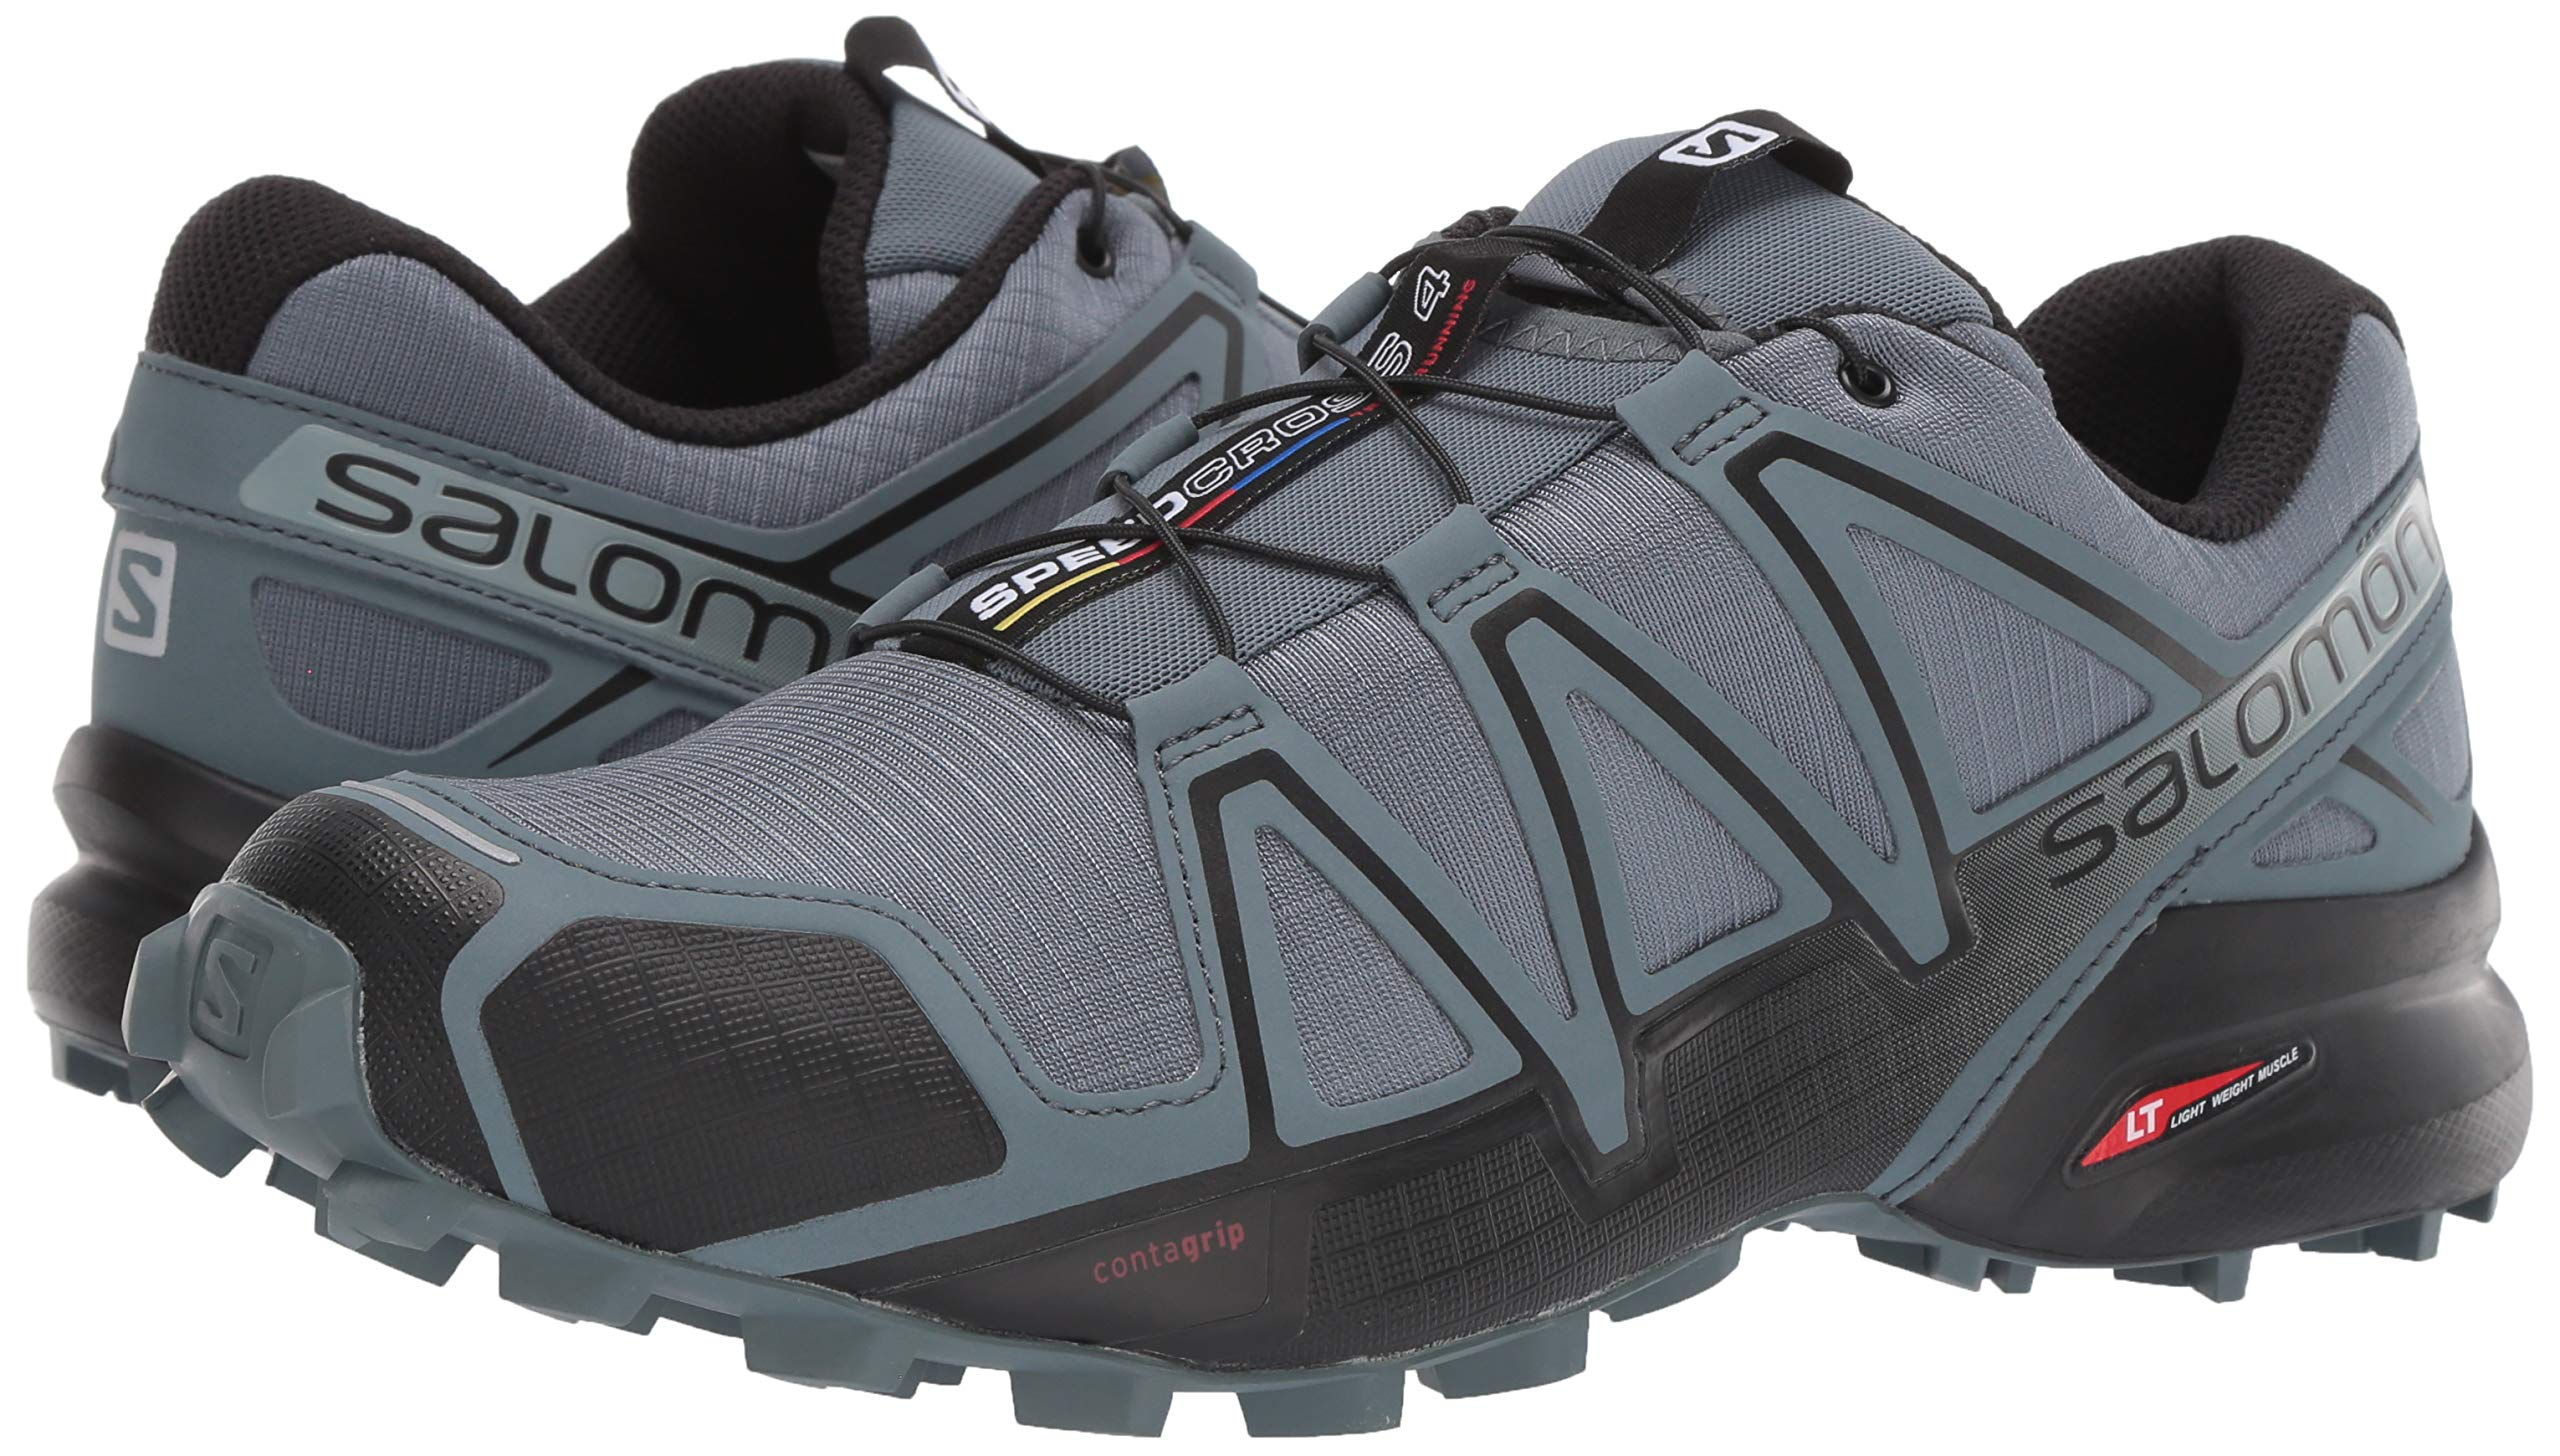 Salomon Speedcross 4 mazarine blue wildblackwhite ab € 81